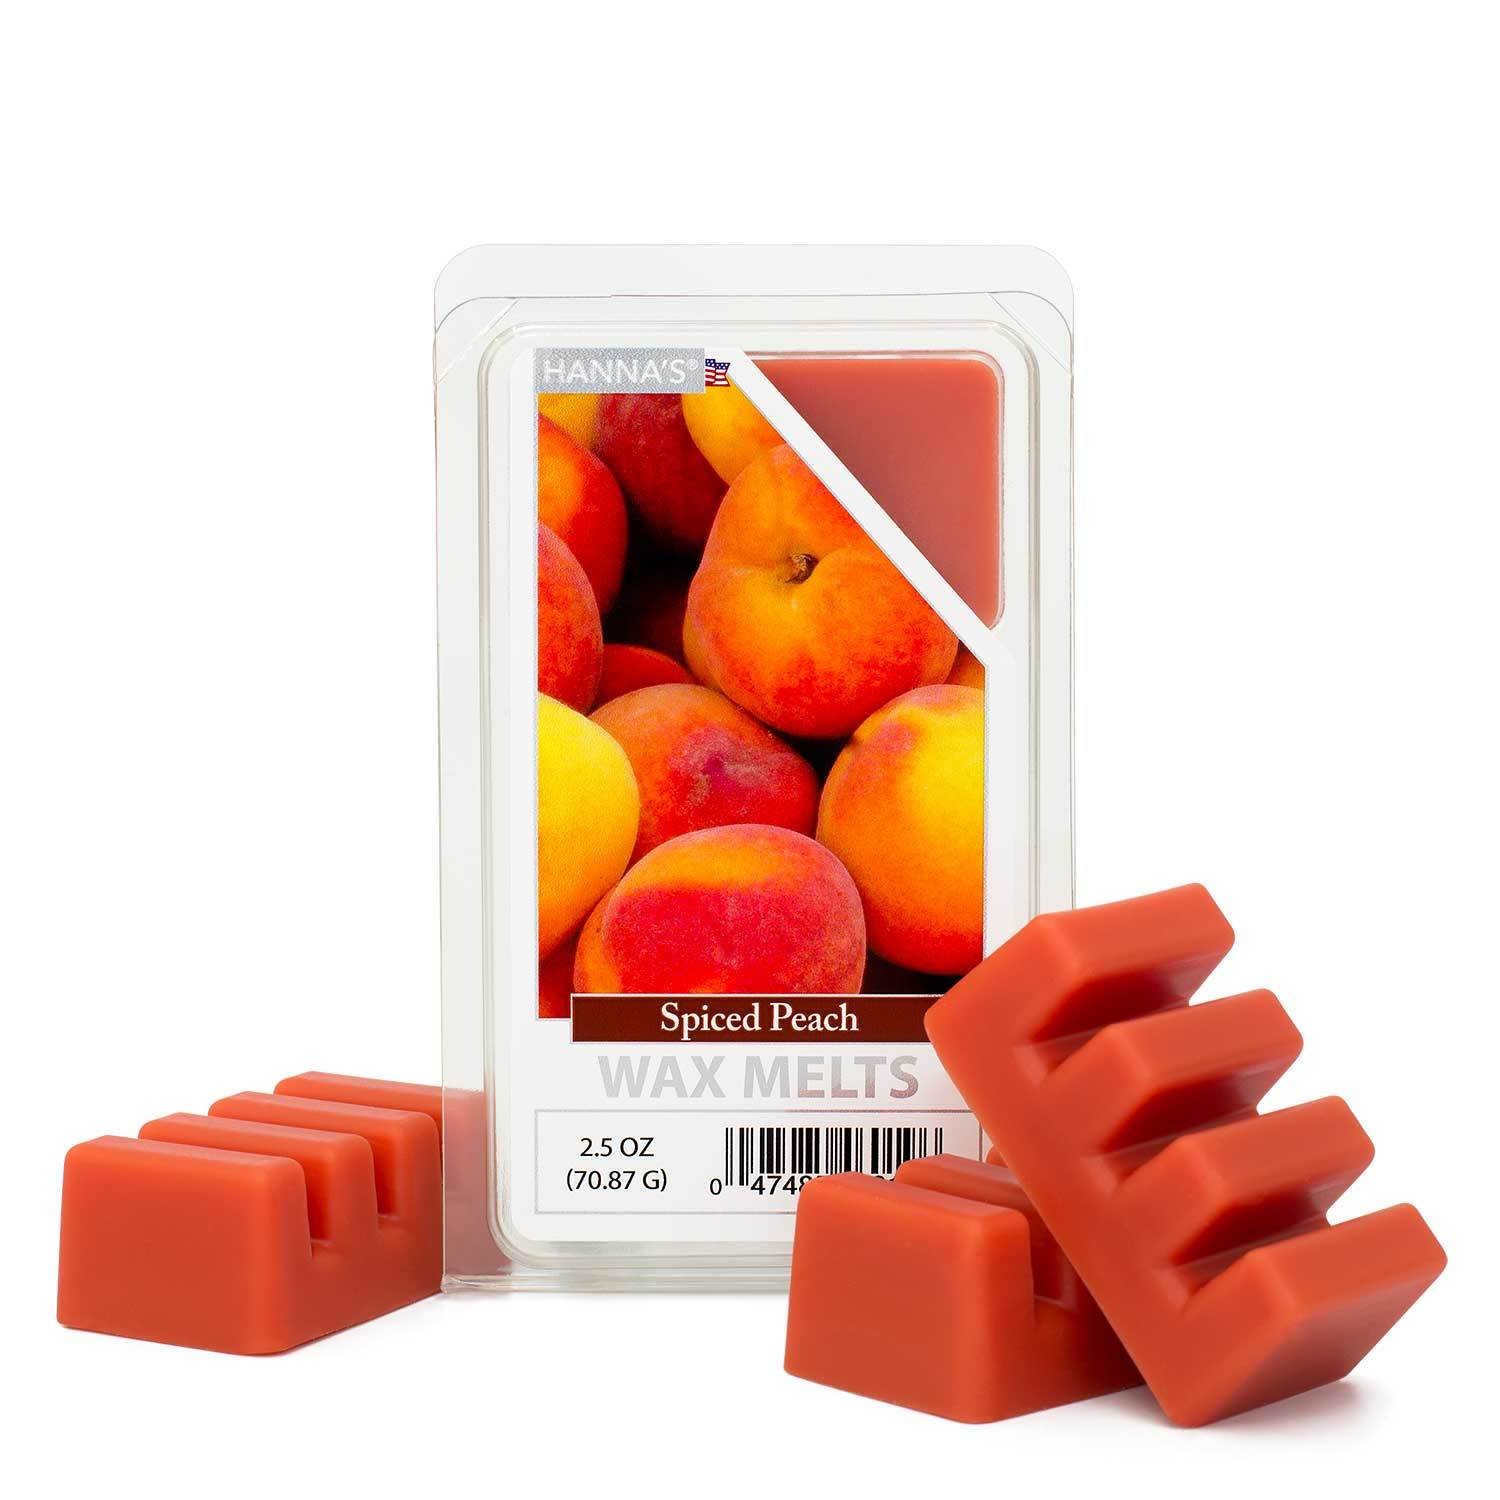 Spiced Peach Wax Melts 6 Pack Melts Candlemart.com $ 12.99